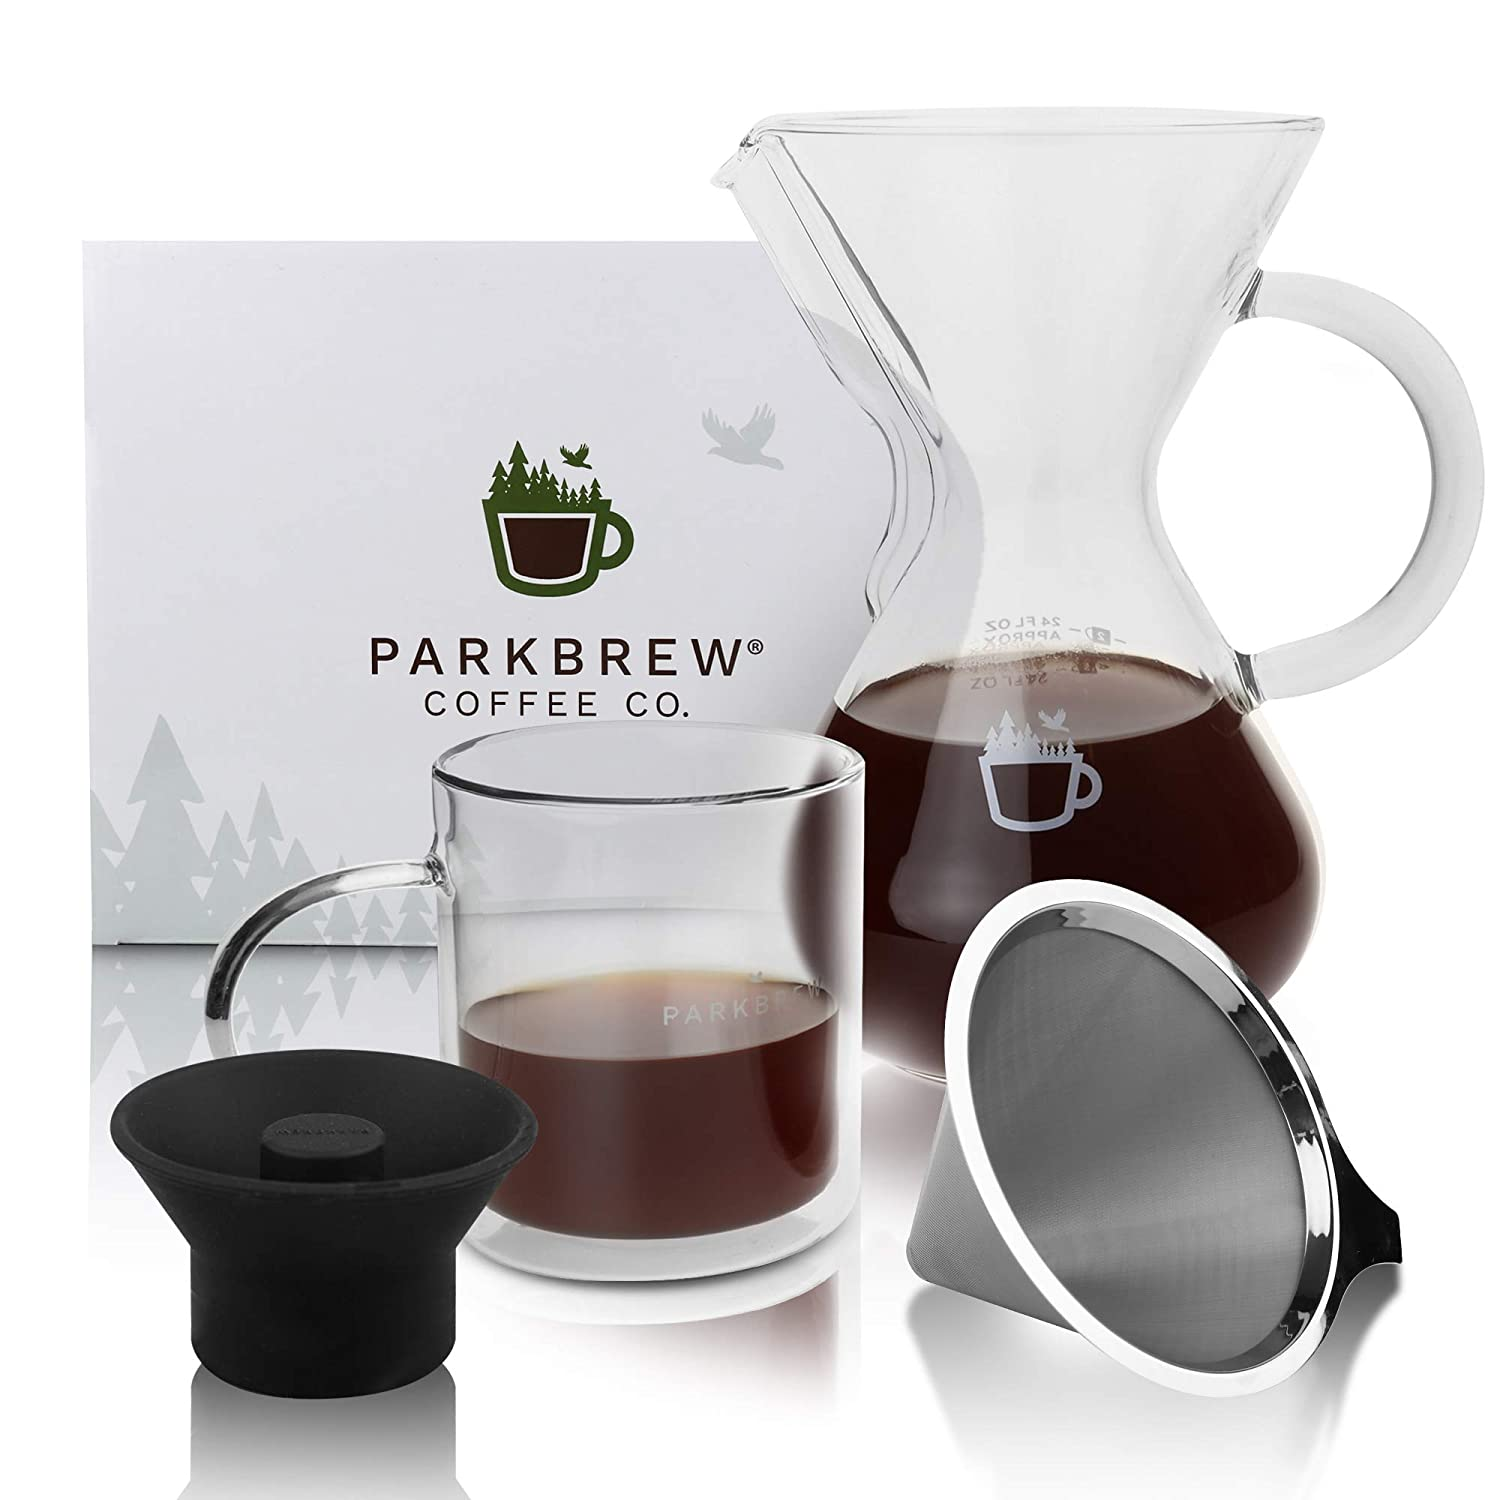 and double wall glass coffee mug ParkBrew Pour Over Coffee Maker up to 27 fl. oz. reusable coffee filter or coffee dripper carafe lid kit includes coffee carafe